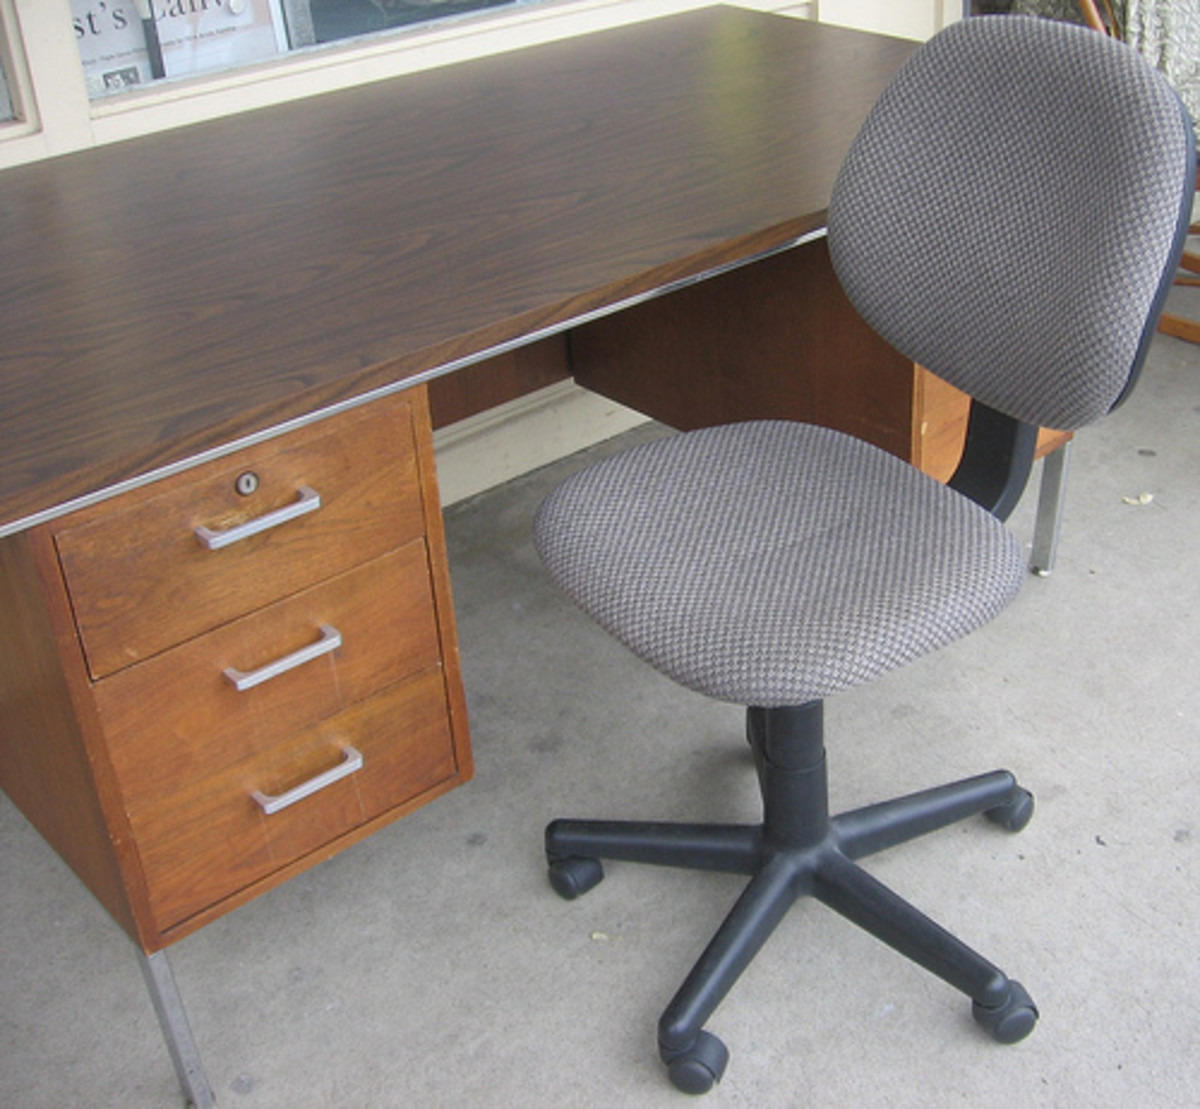 Don't overlook used furniture to save $$ in your home office.